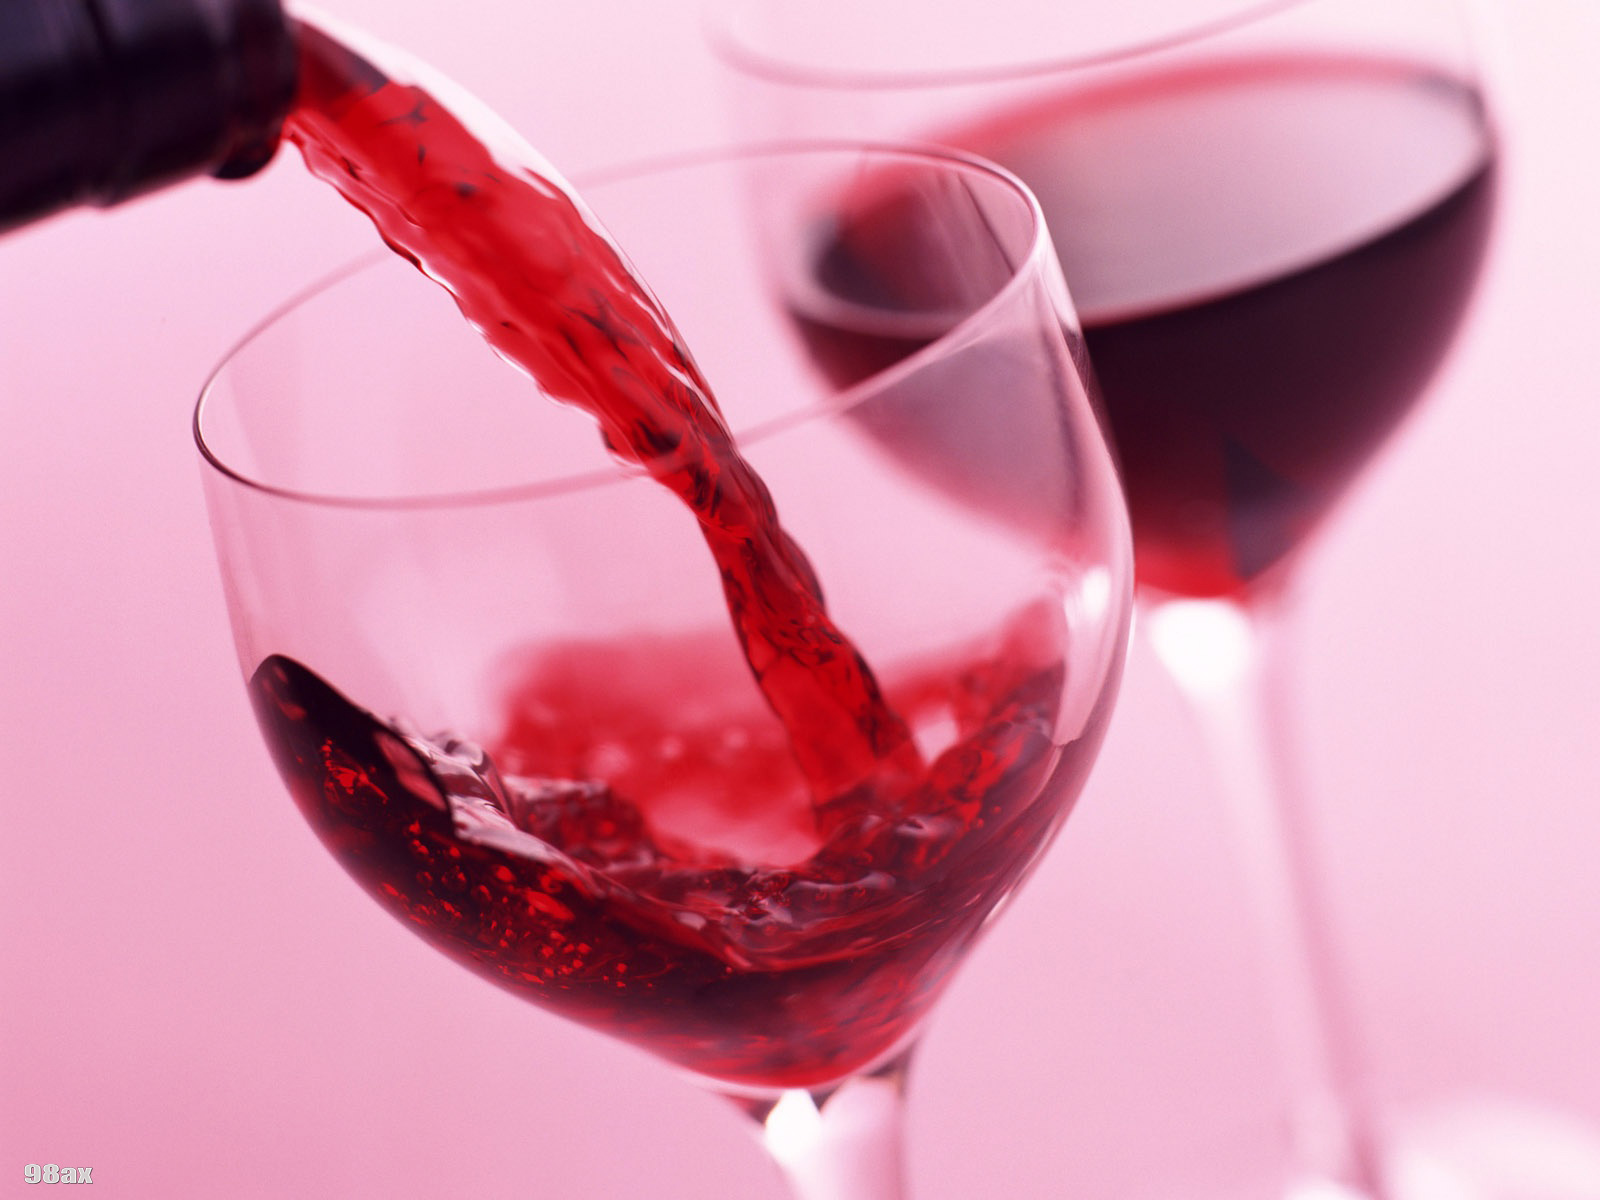 http://sahebnews.ir/files/uploads/2015/09/red_wine.1600.jpg